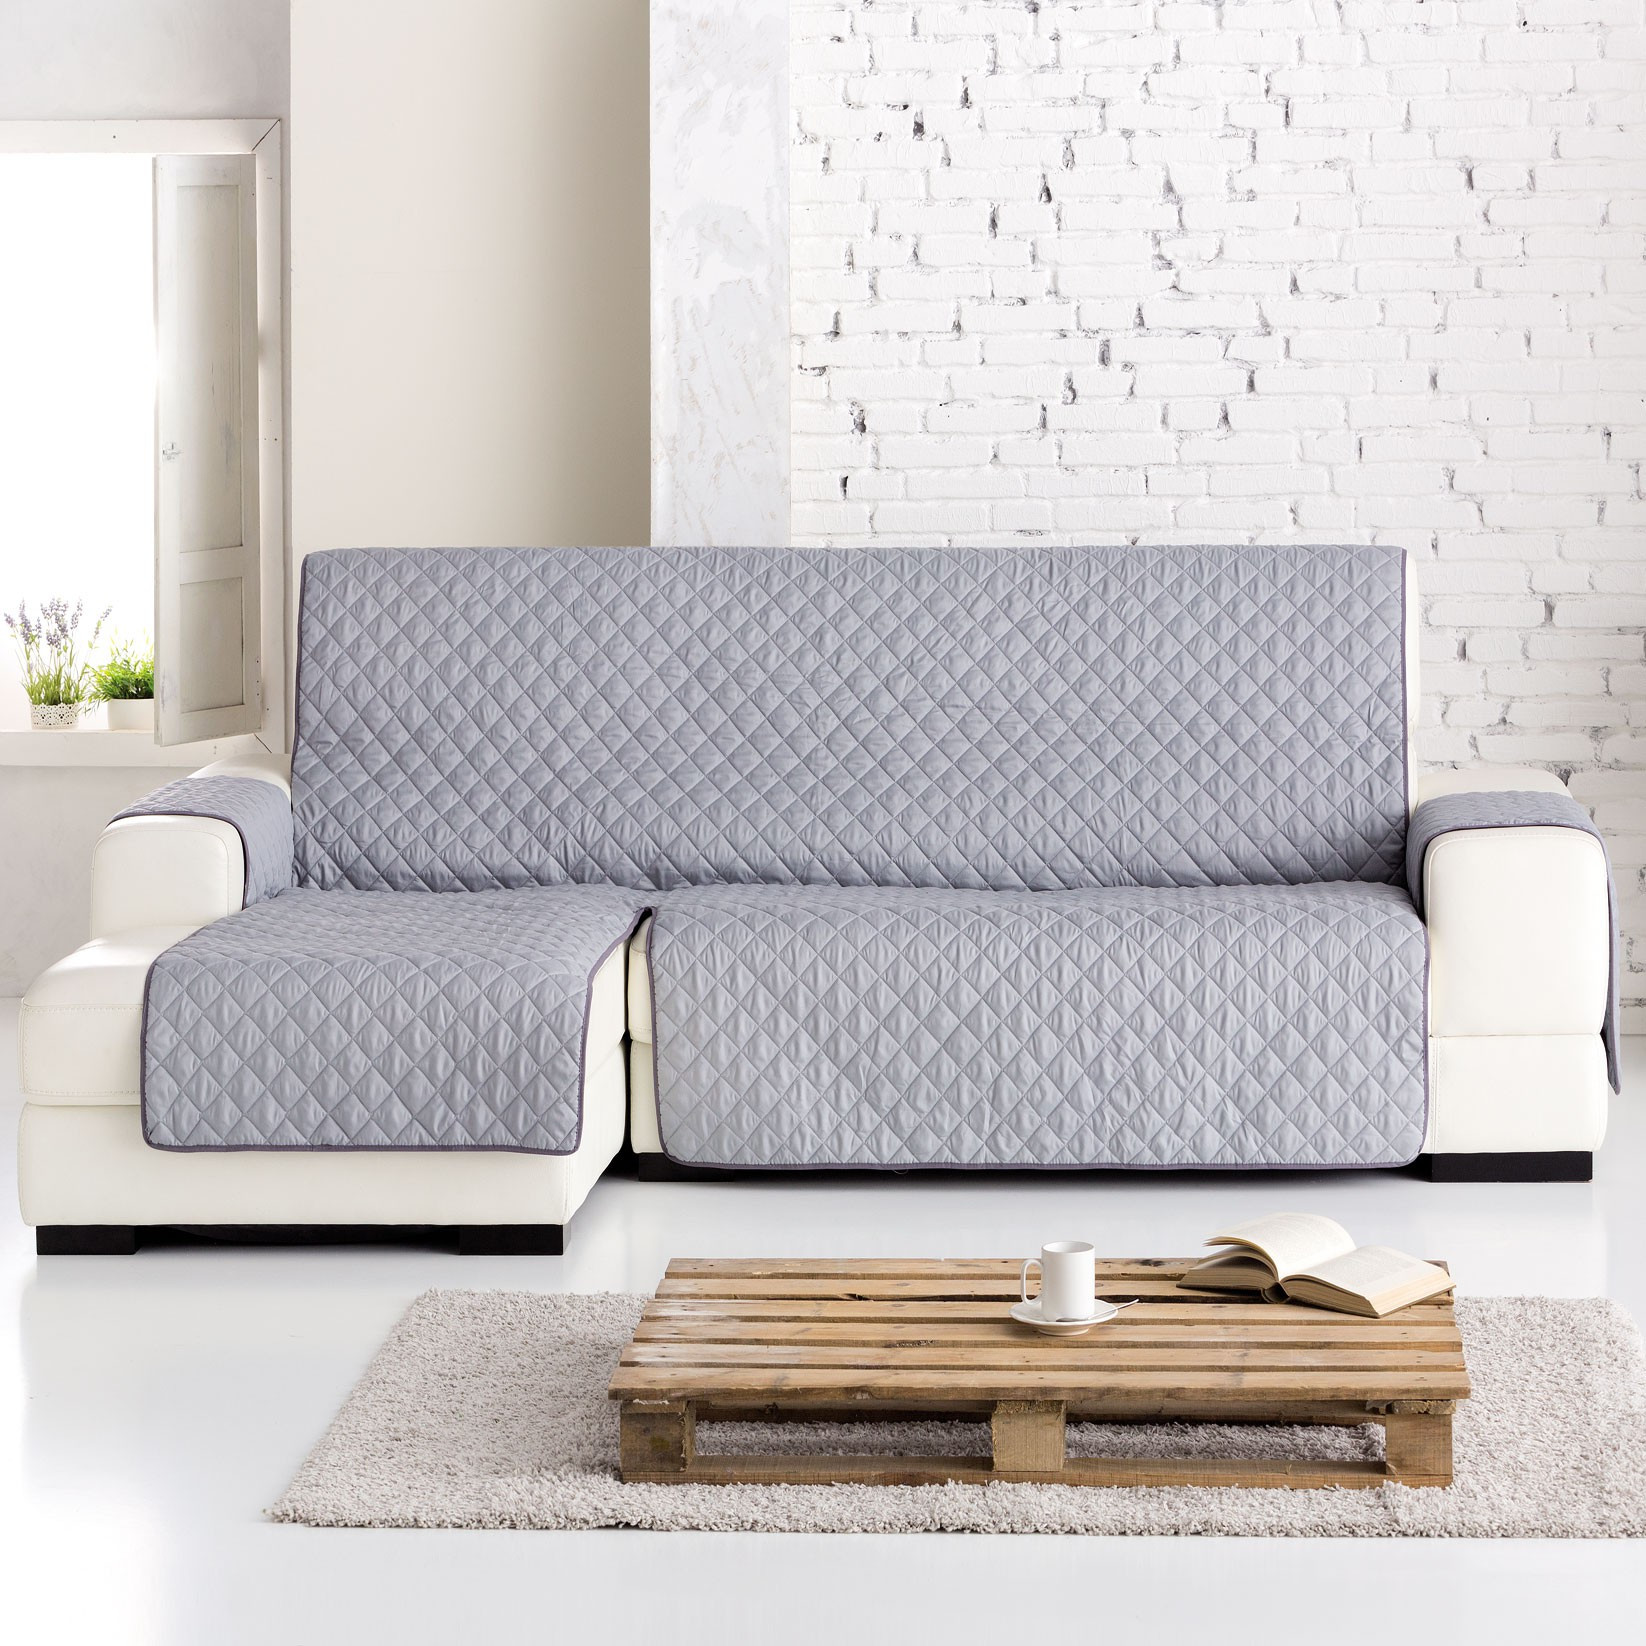 Funda sofa Chaise Longue Único Funda Chaise Longue Práctica Dual Quilt Gris Of 37  Innovador Funda sofa Chaise Longue